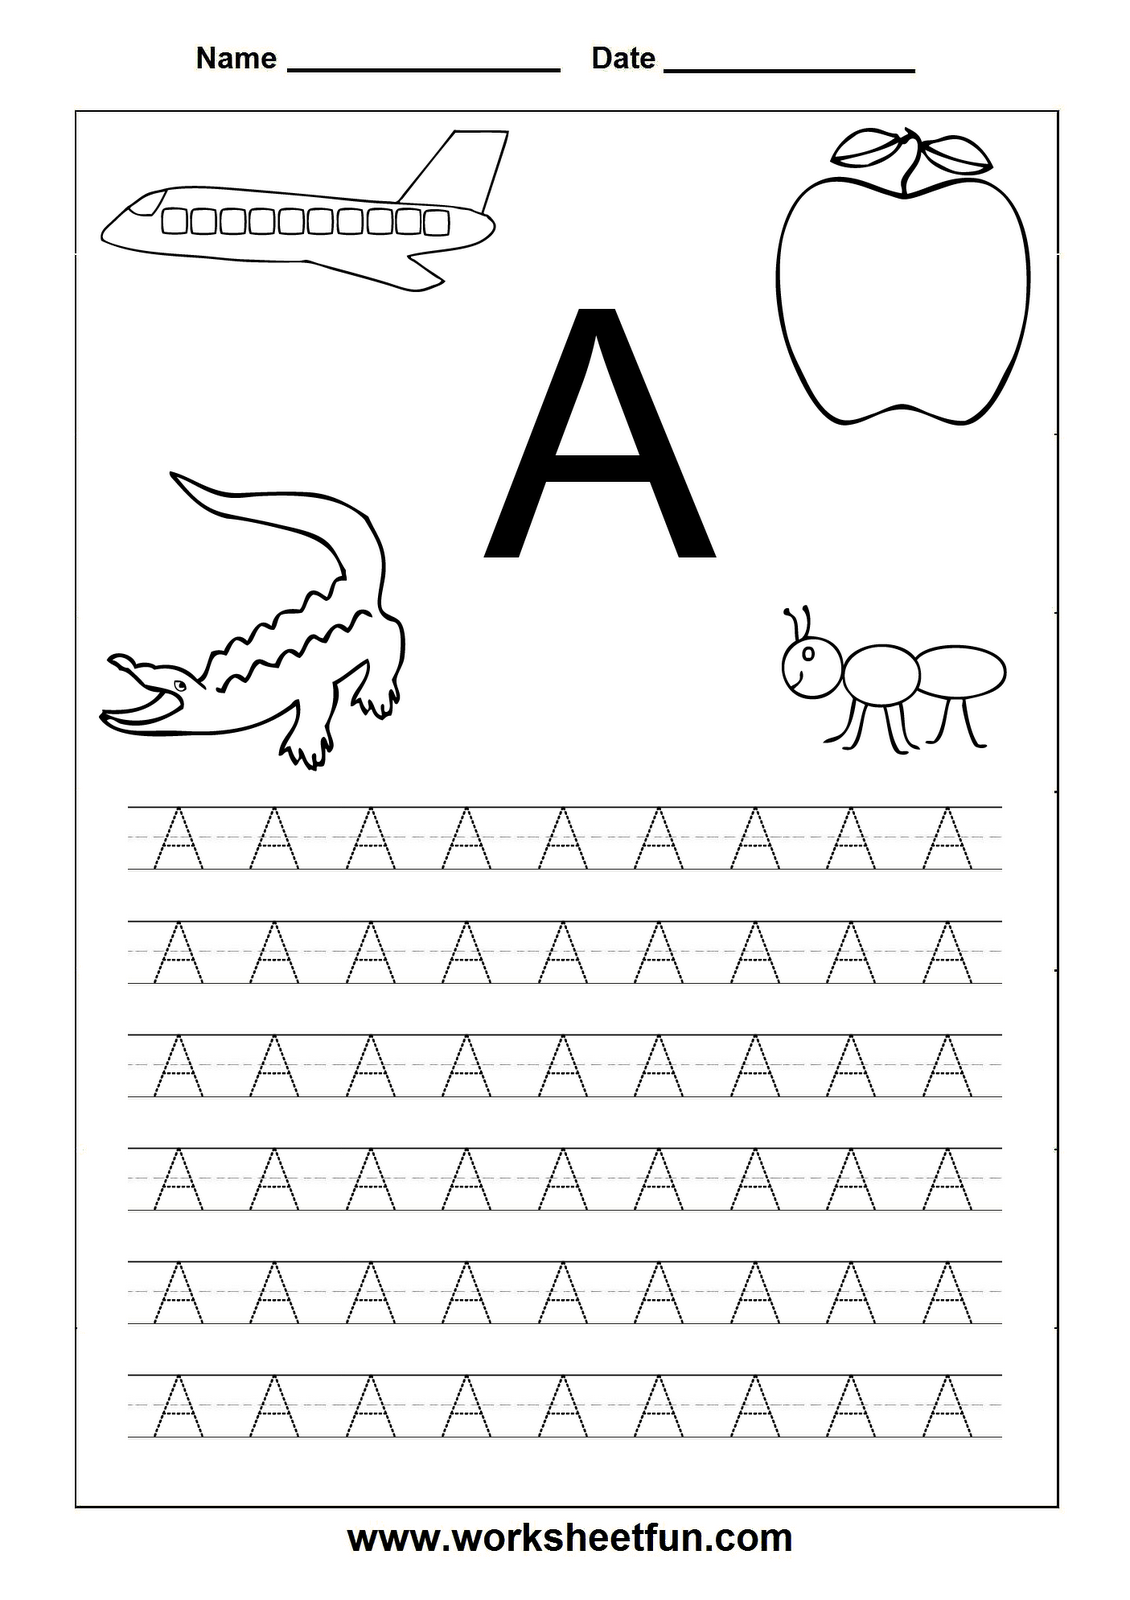 AZ Capital Letter Tracing Worksheets there are PLENTY more – Free Printable Alphabet Worksheets for Kindergarten